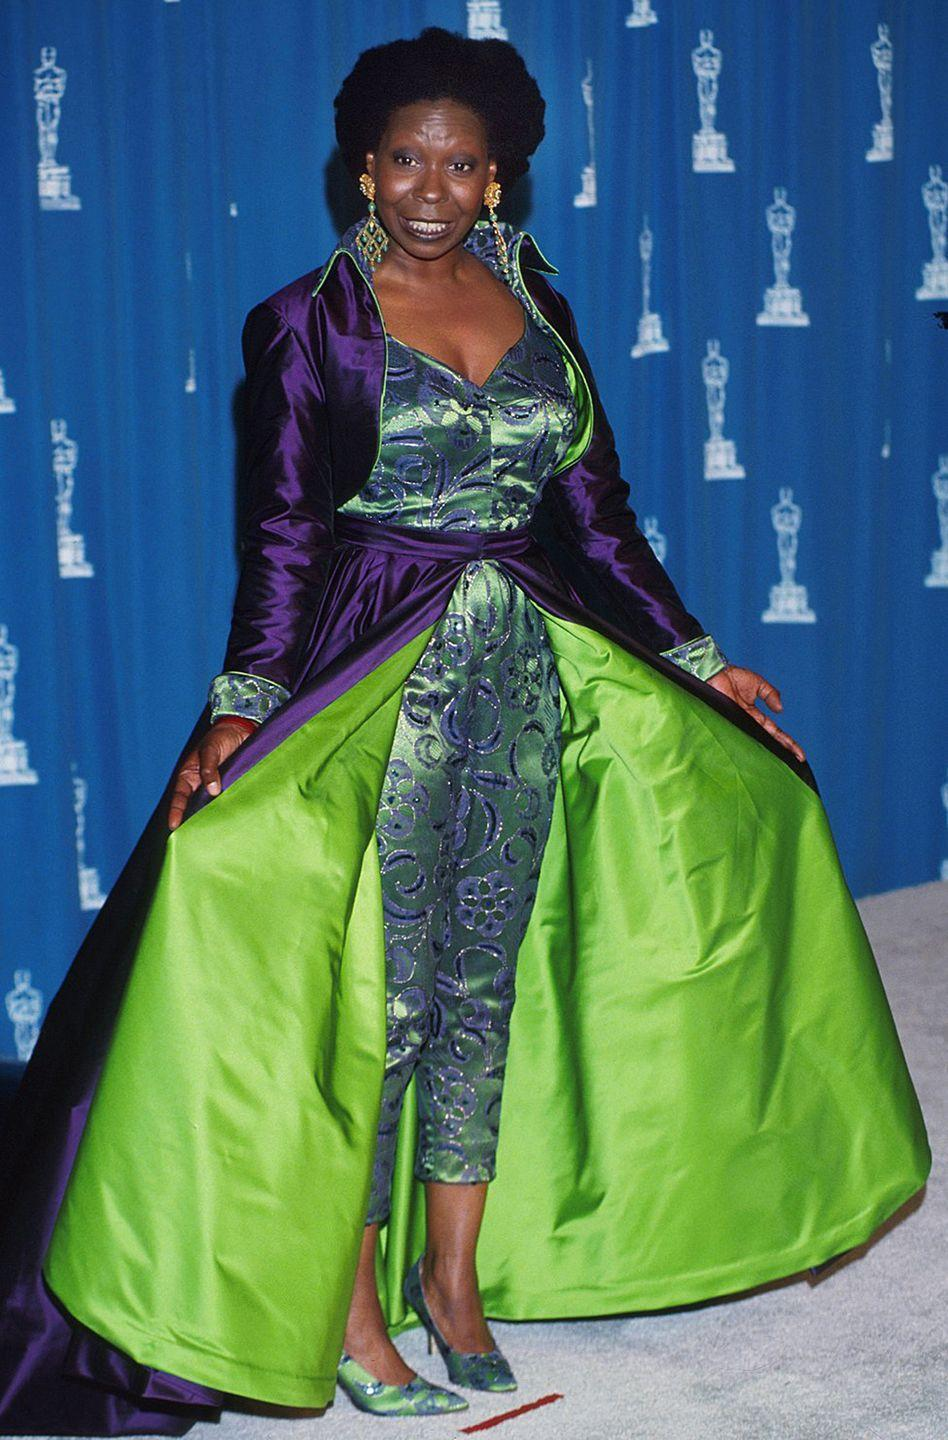 """<p>Whoopi was way ahead of the <a href=""""https://www.cosmopolitan.com/style-beauty/fashion/a23323743/neon-green-trend-2018/"""" rel=""""nofollow noopener"""" target=""""_blank"""" data-ylk=""""slk:neon-green trend"""" class=""""link rapid-noclick-resp"""">neon-green trend</a> that's been in full force lately, but at the Oscars, she paired the hue with deep purple and teal to make a can't-miss-it red-carpet ensemble. Like, wow, this is a LOT of color. </p>"""